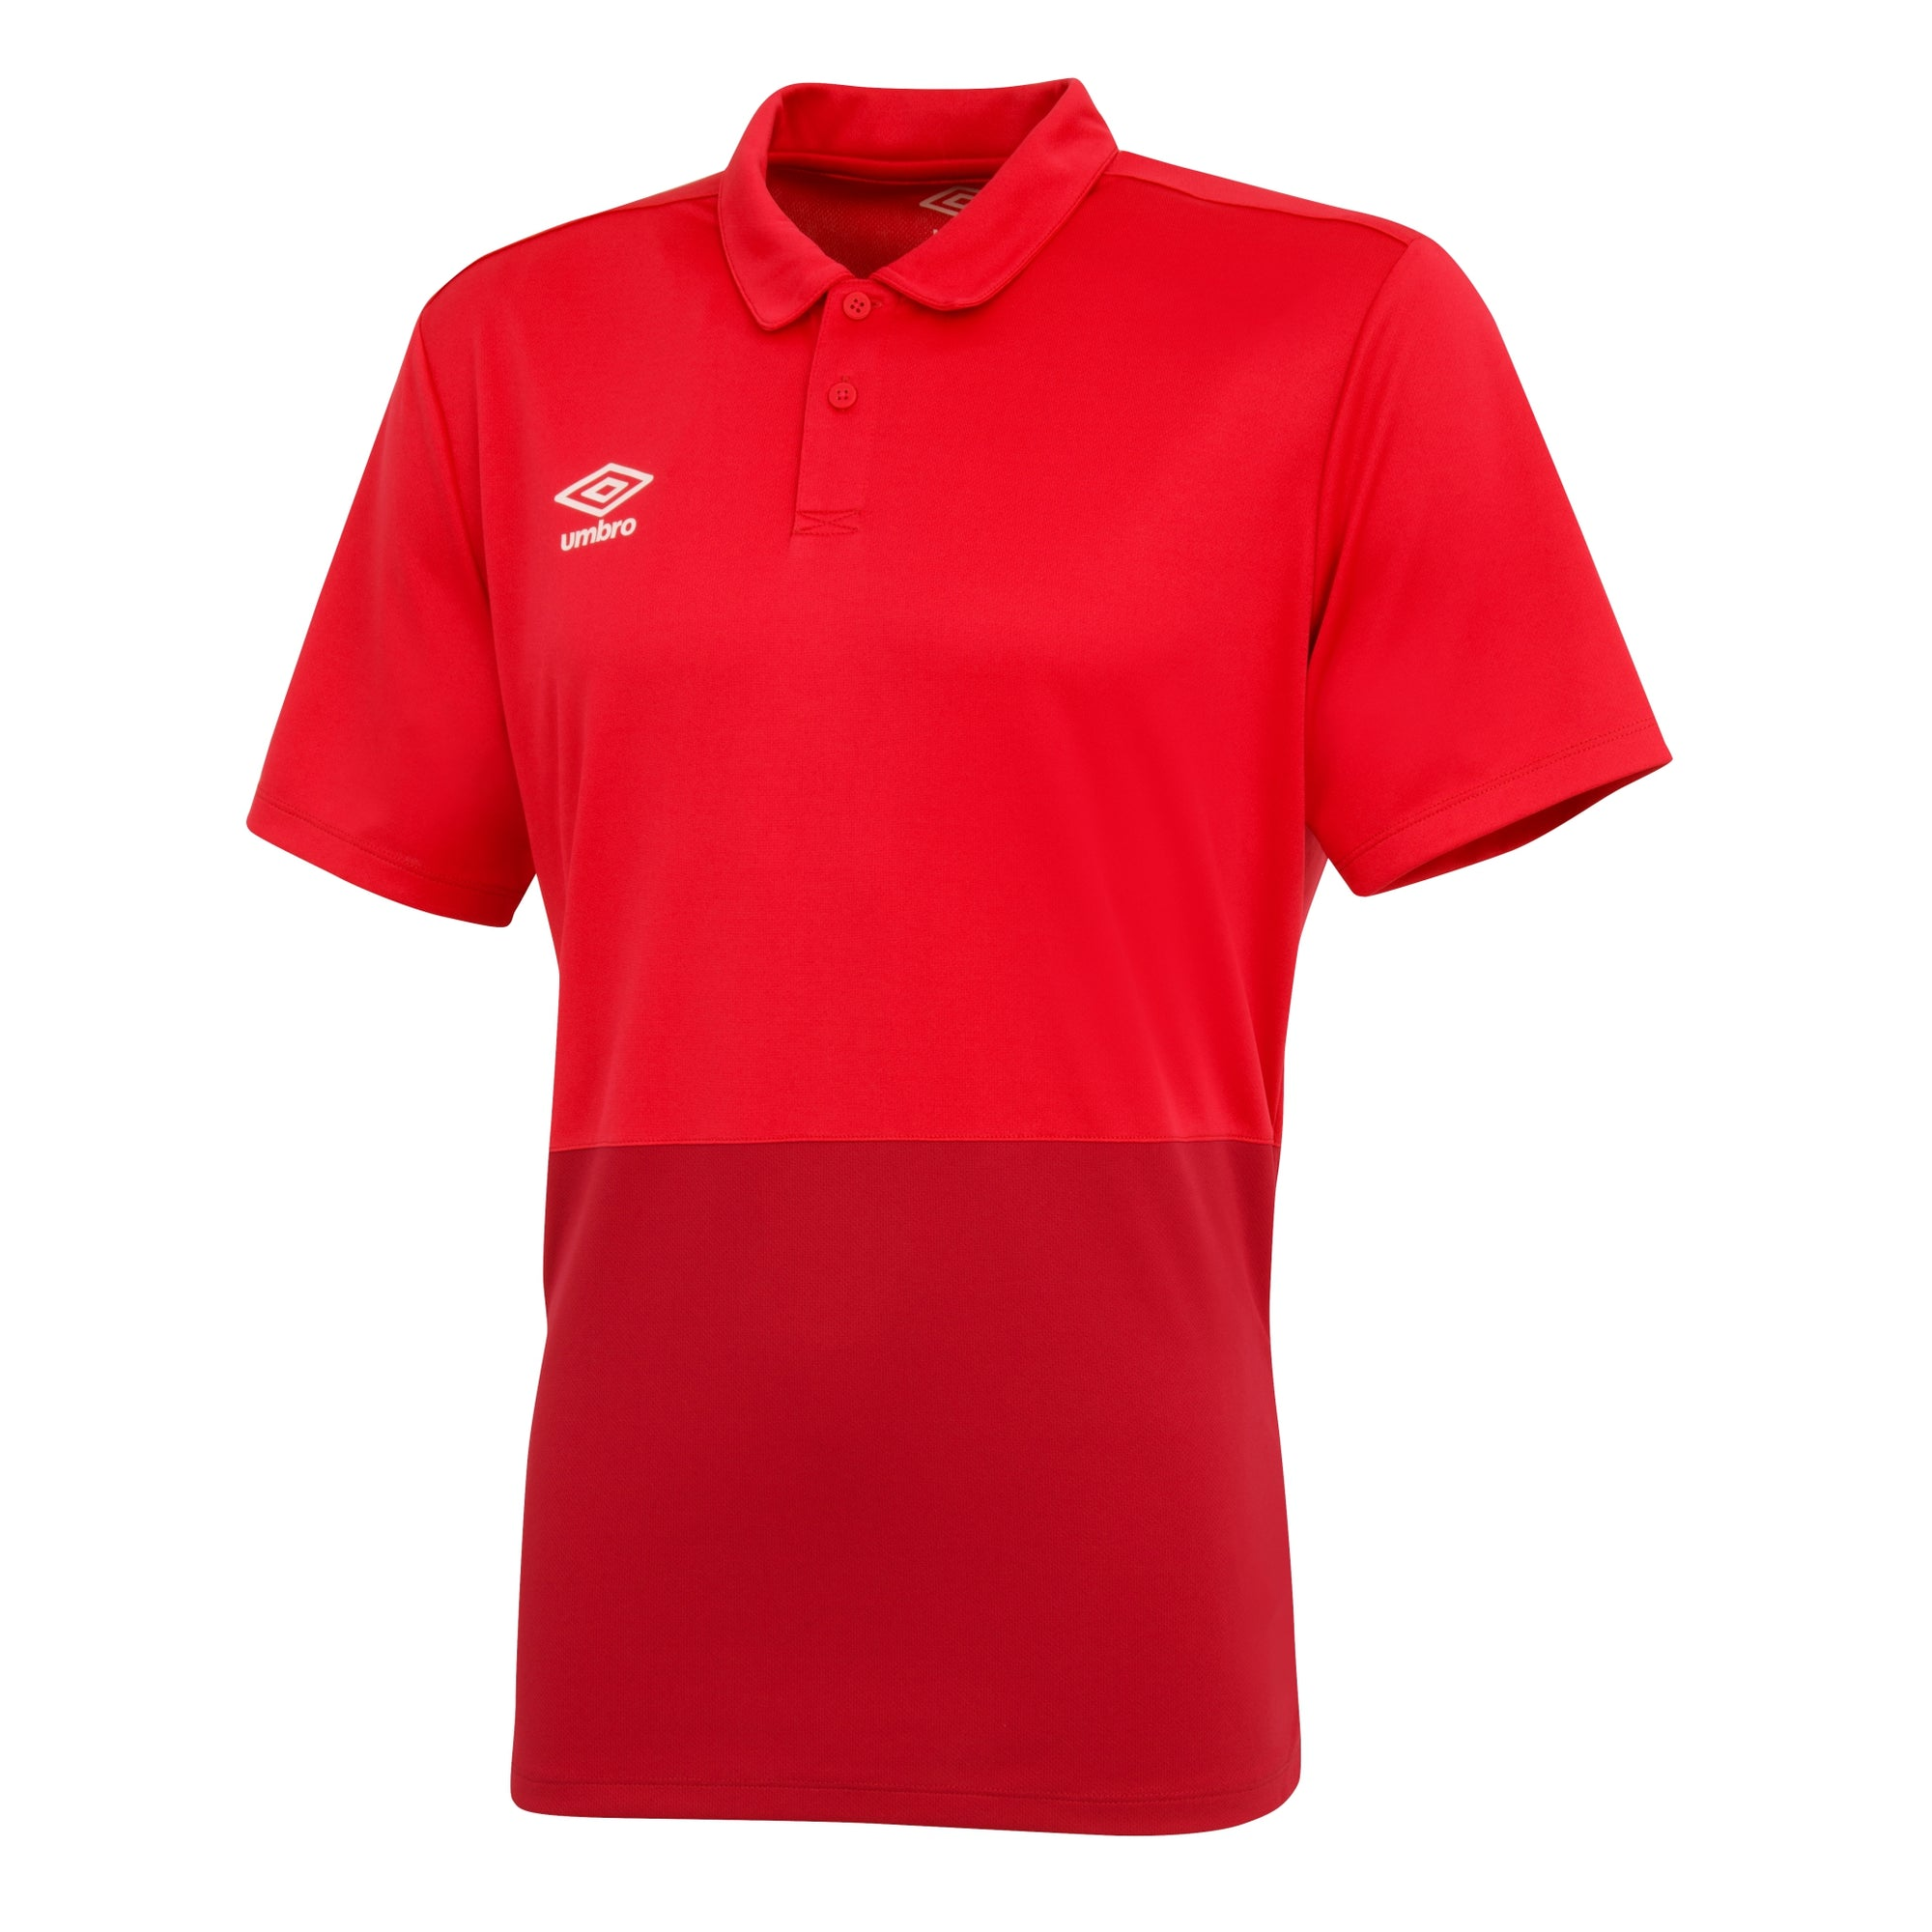 Umbro Poly Polo - Vermillion/Jester Red/White